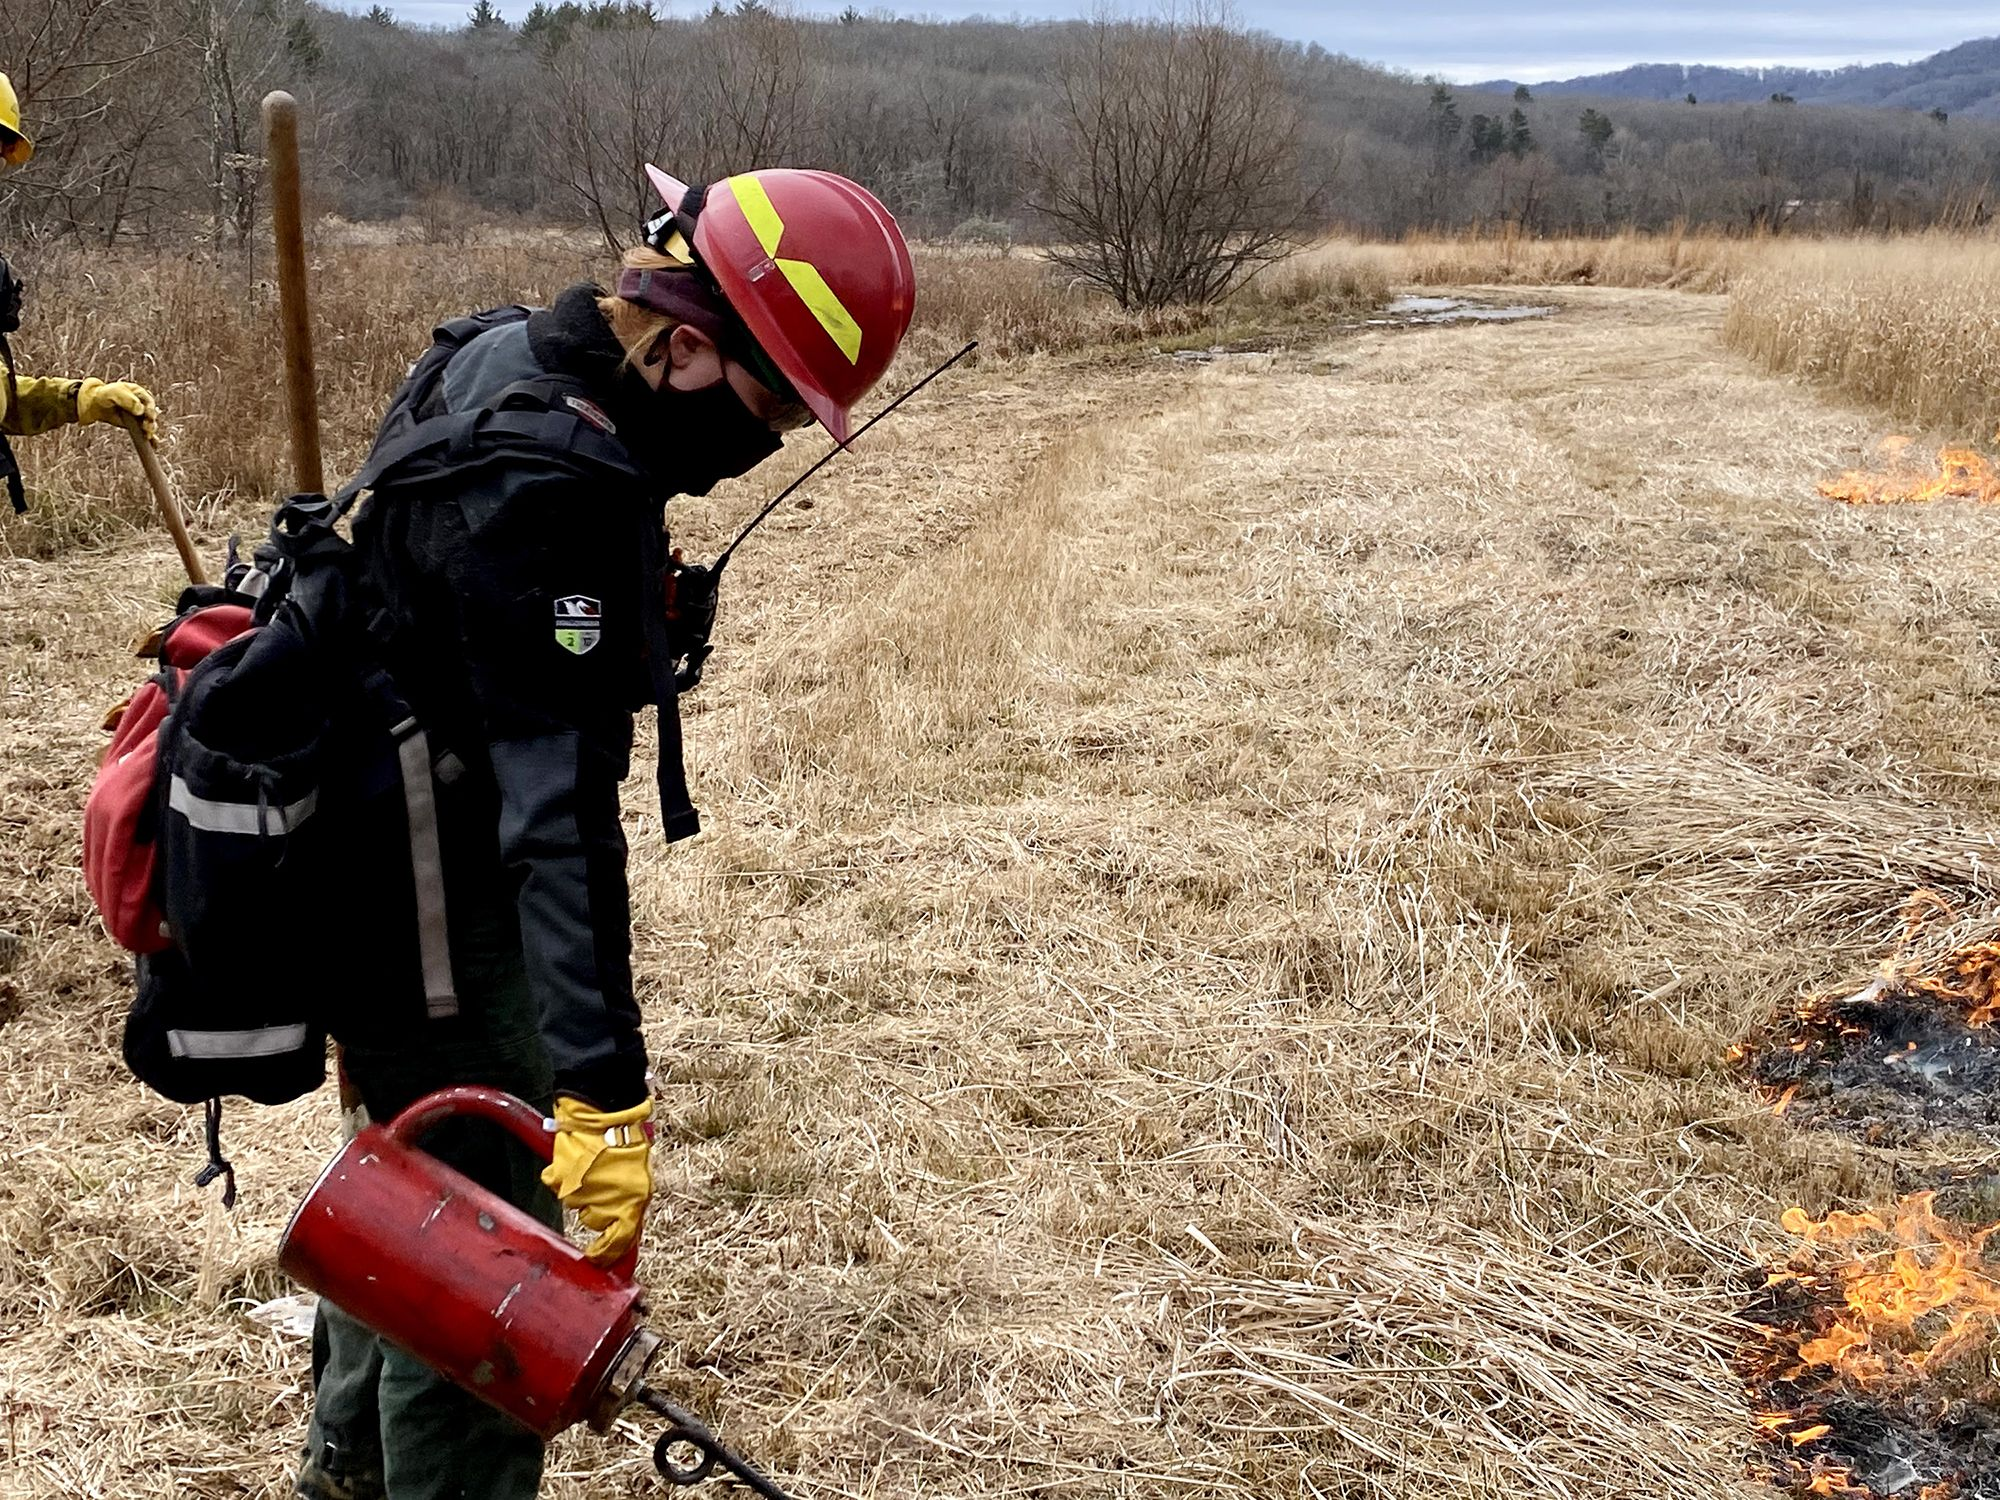 A woman wearing a red hard hat uses a red drip torch to start a fire line in an open grassy field during a controlled burn.